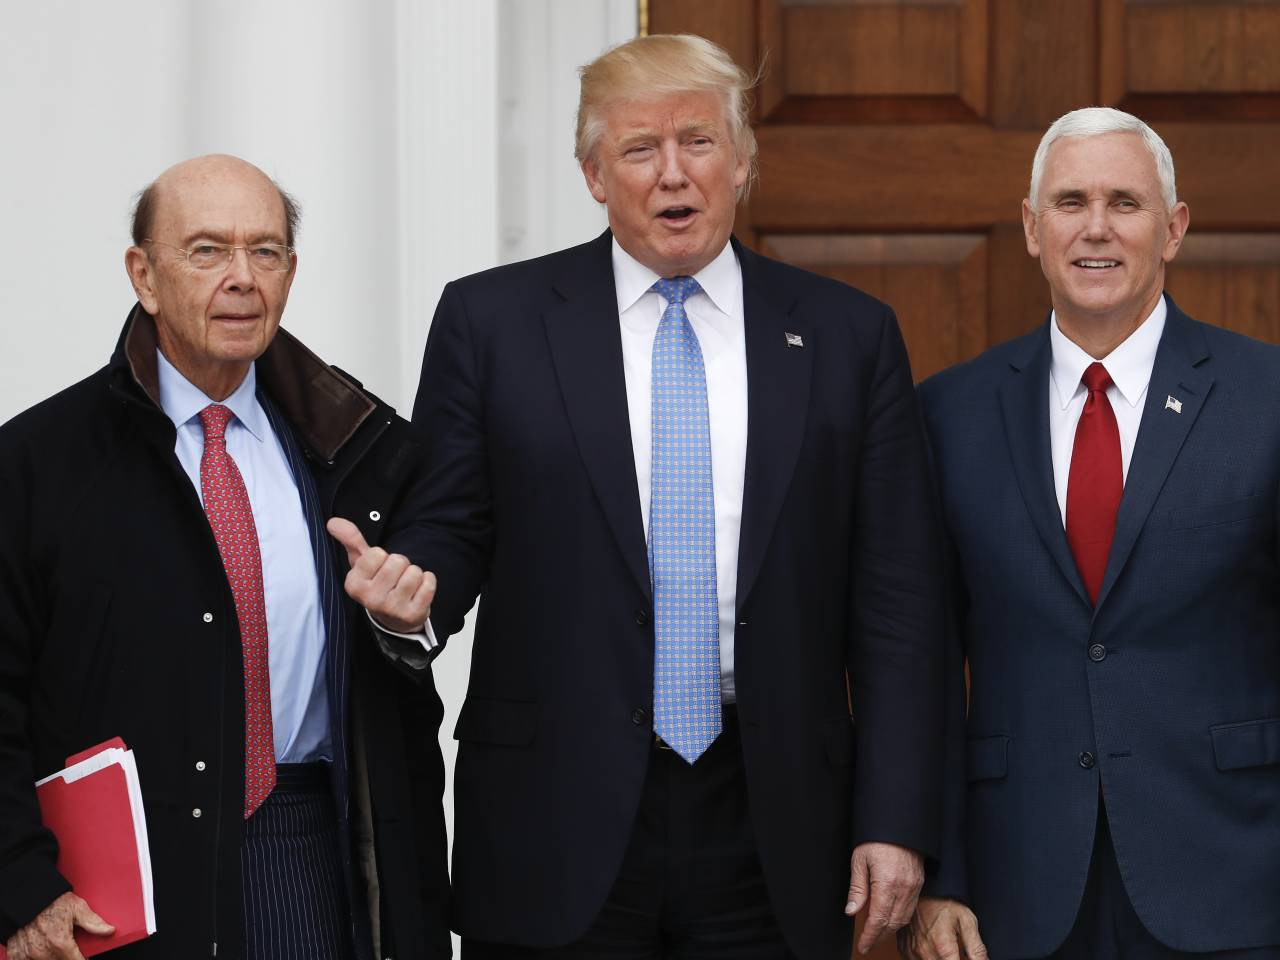 DrainTheSwamp: Donald Trump's Cabinet of billionaires is worth ...